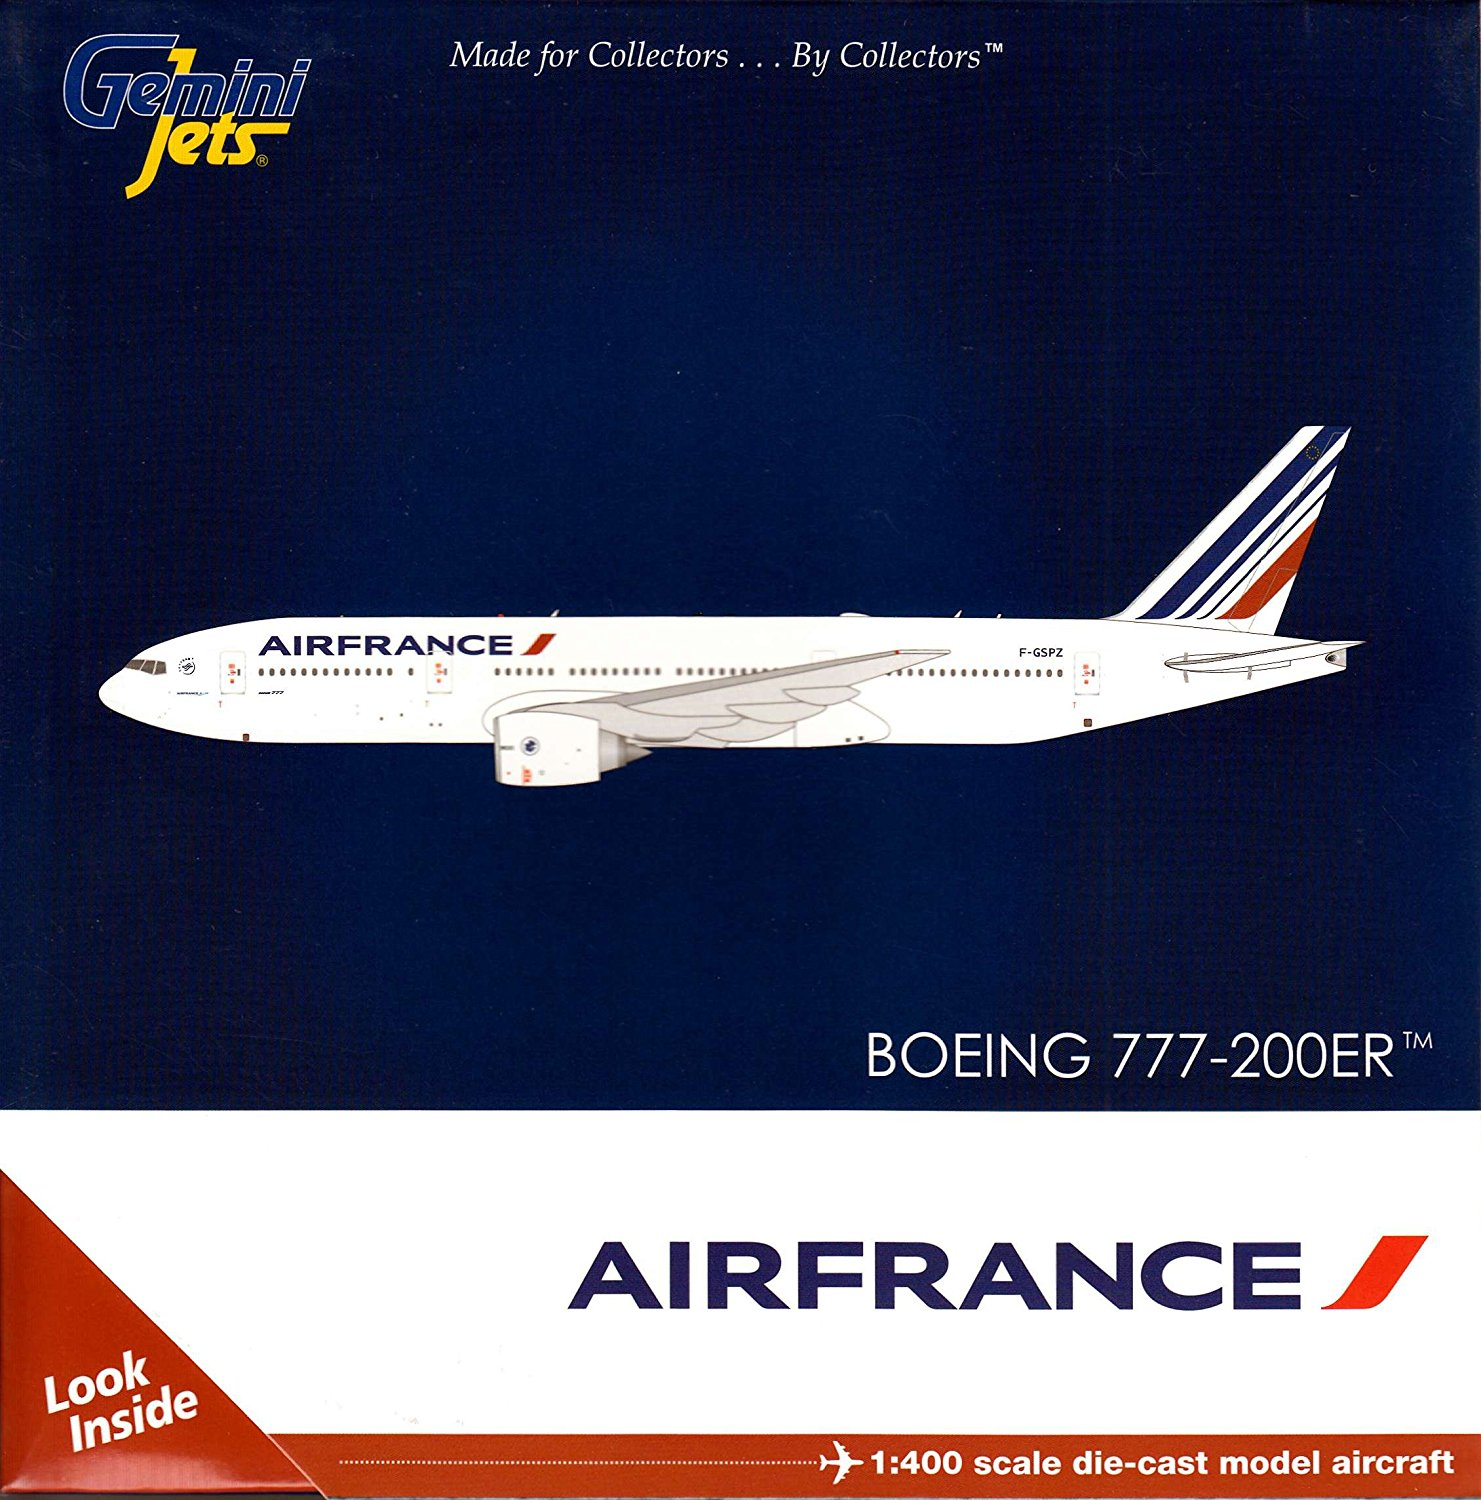 Gemini Jets Air France B777-200ER F-GSPZ 1:400 Scale Diecast Model Airplane